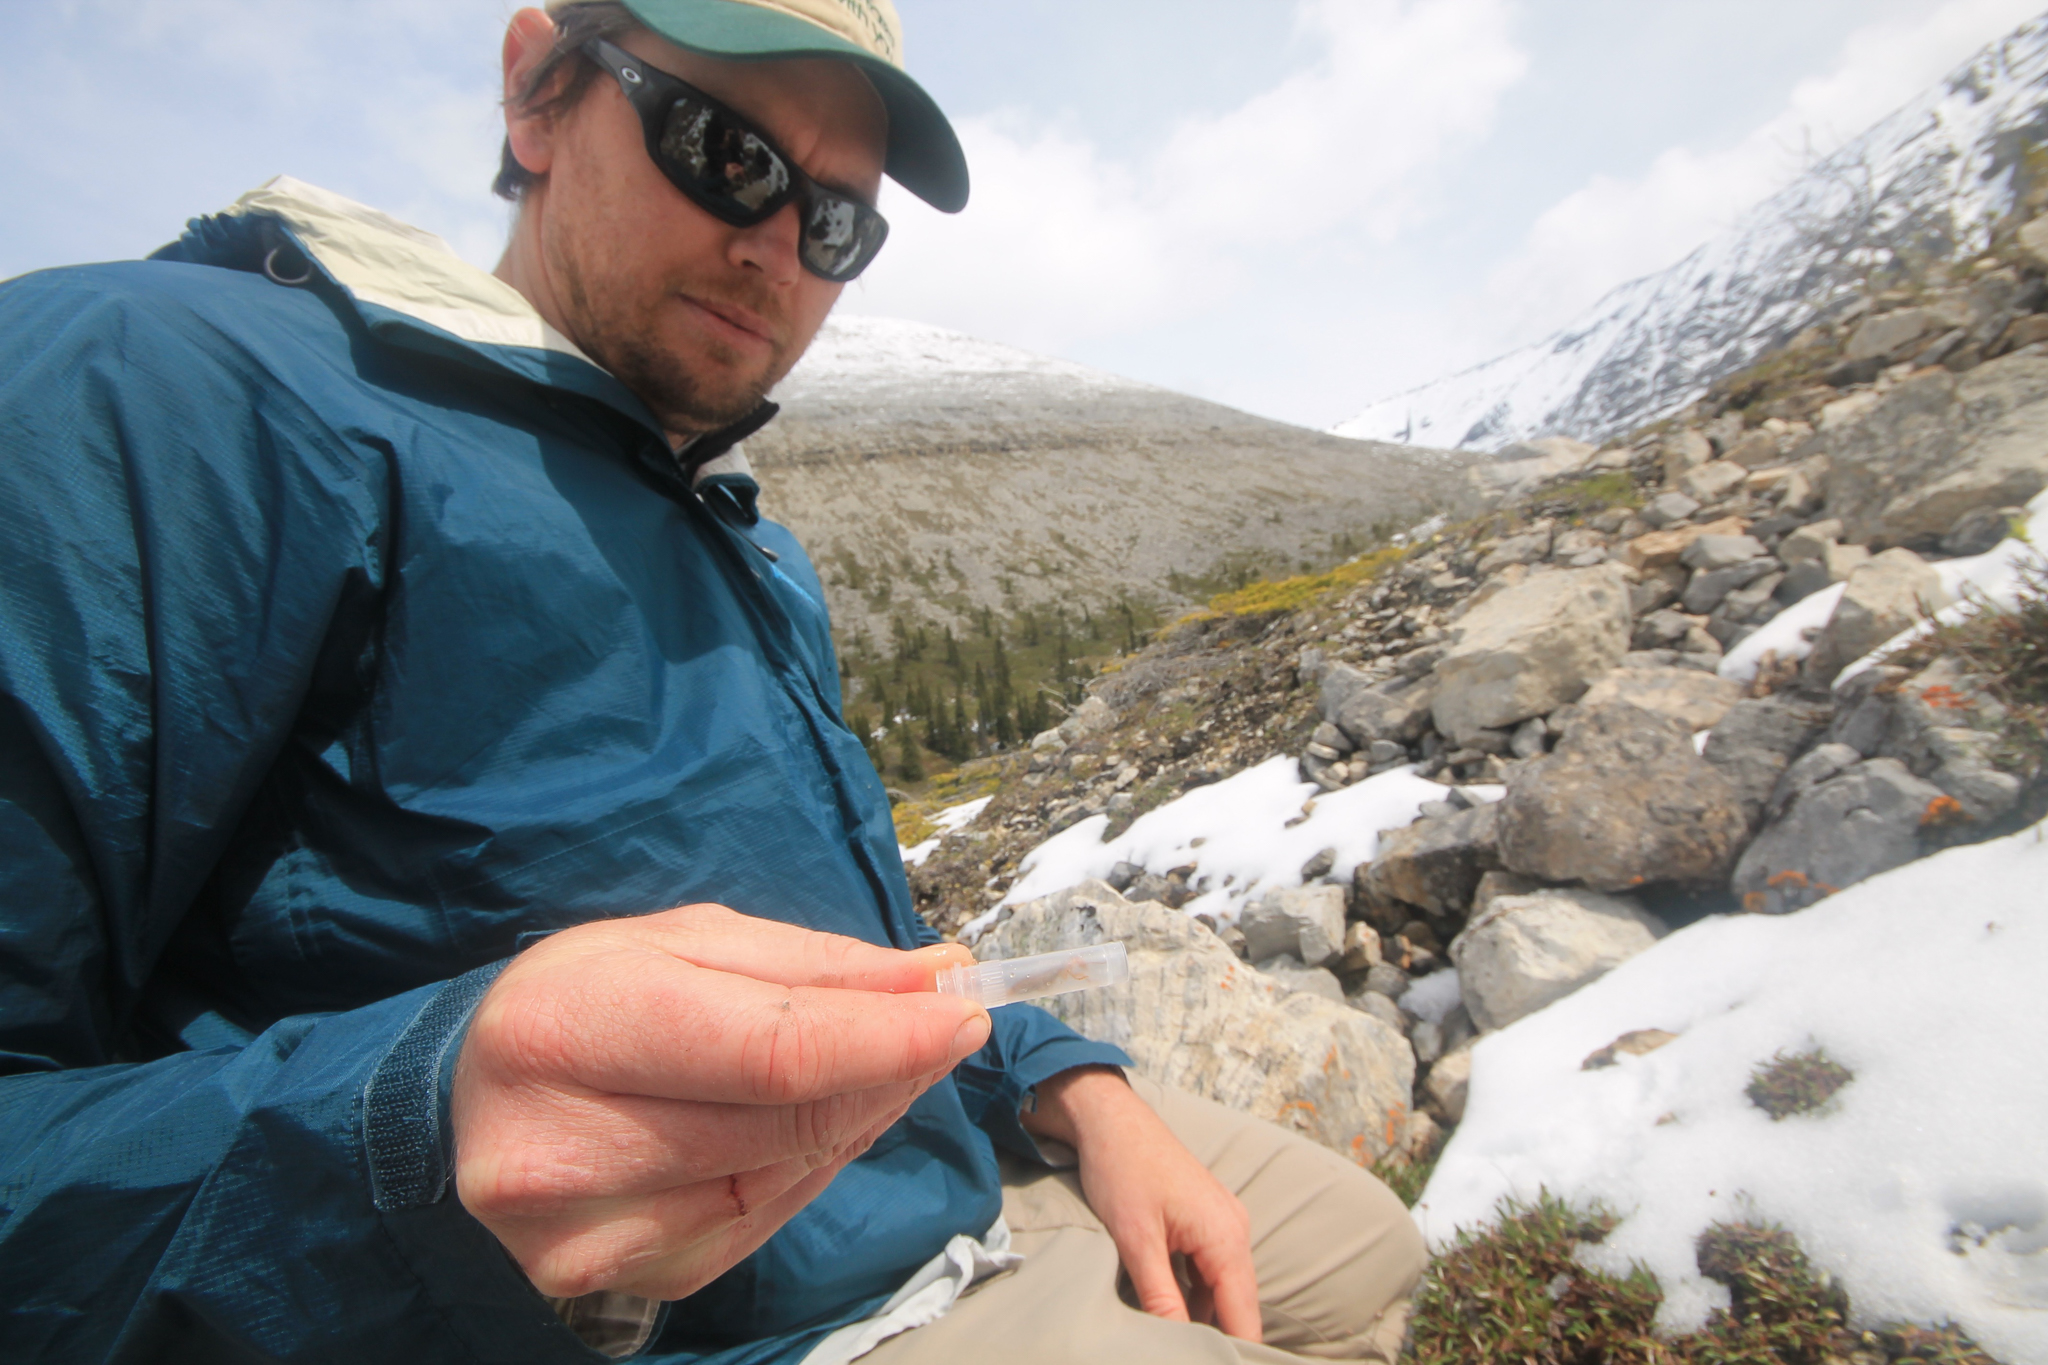 Sean Schoville places an ice crawler in an alcohol-filled vial to preserve its DNA for analysis back in the lab.